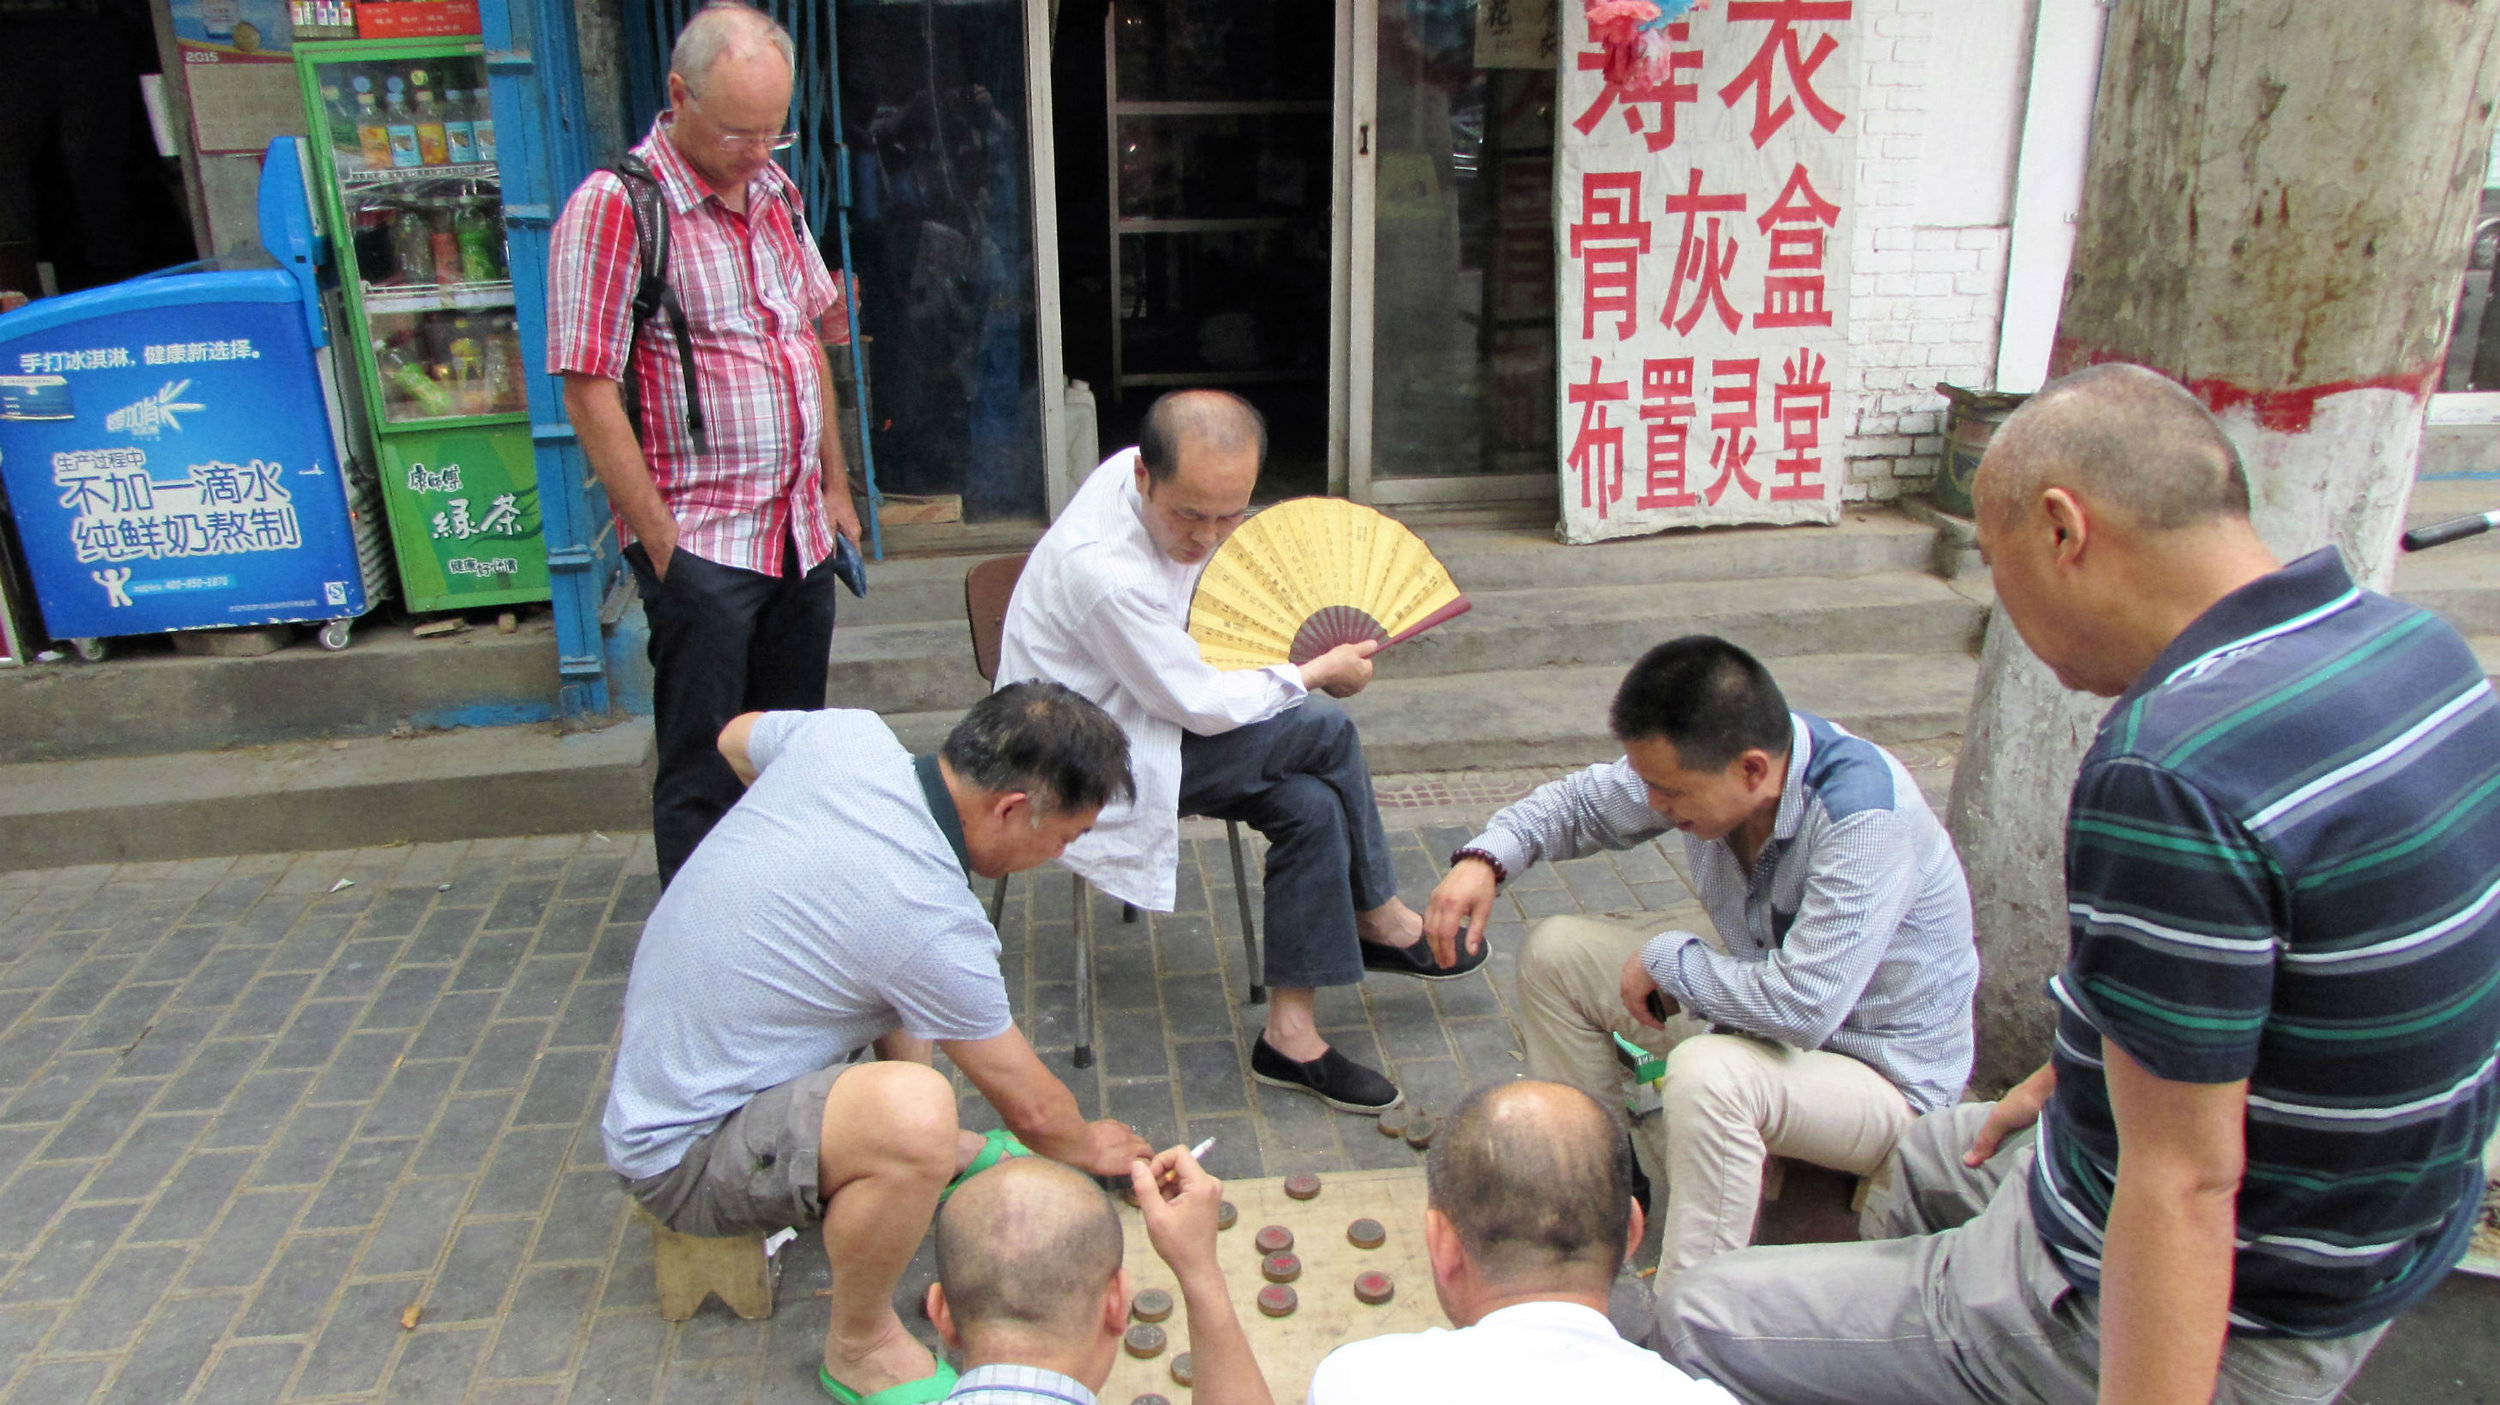 Playing xiangqi (chinese chess) in the streets of Xi'an. Spectators will loudly give advice to the players and criticize moves.